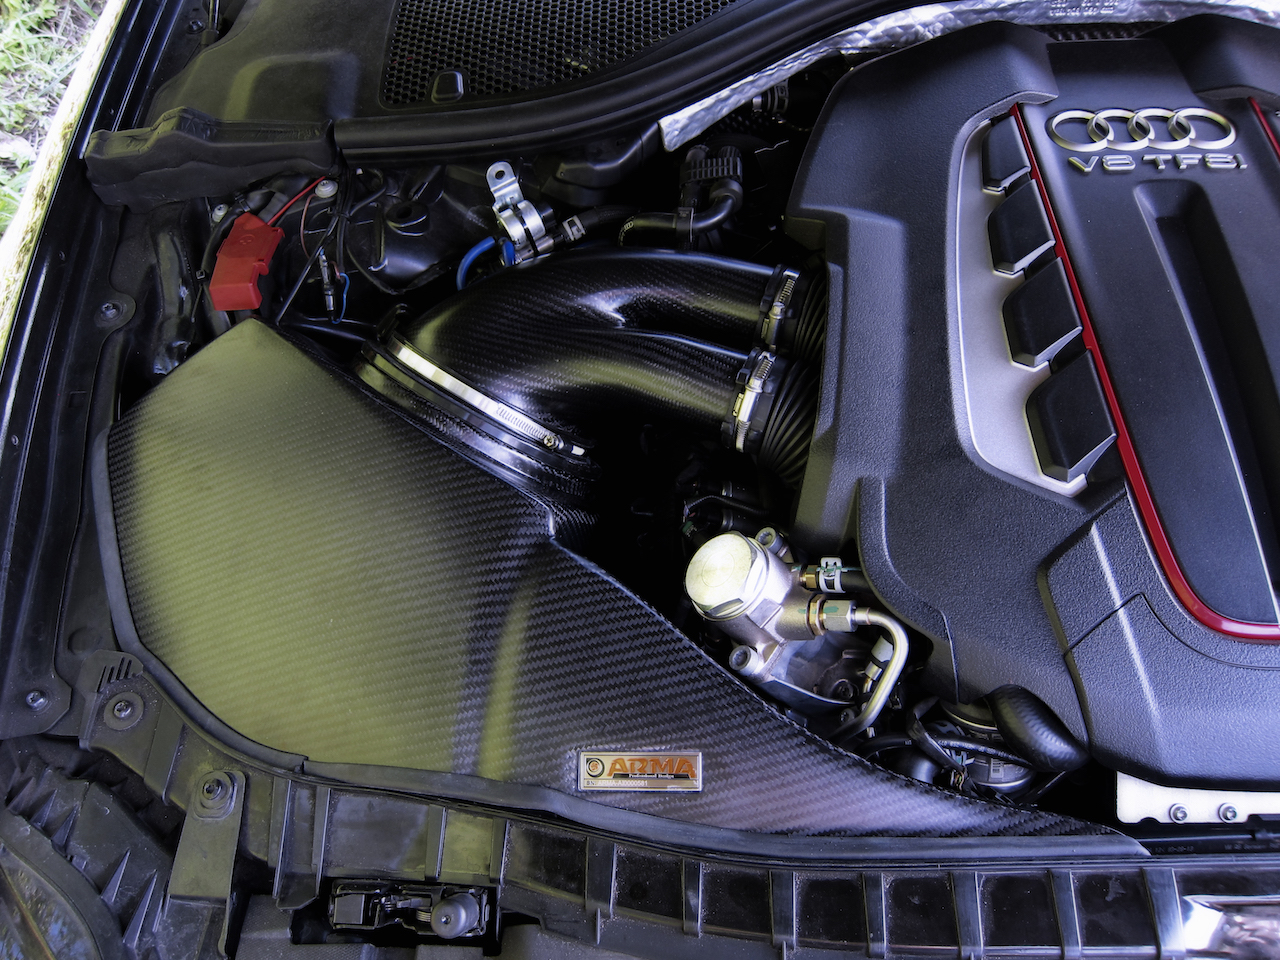 BMW Dealers In Ma >> Audi S6 C7 Cold Carbon Intake - ARMA Speed